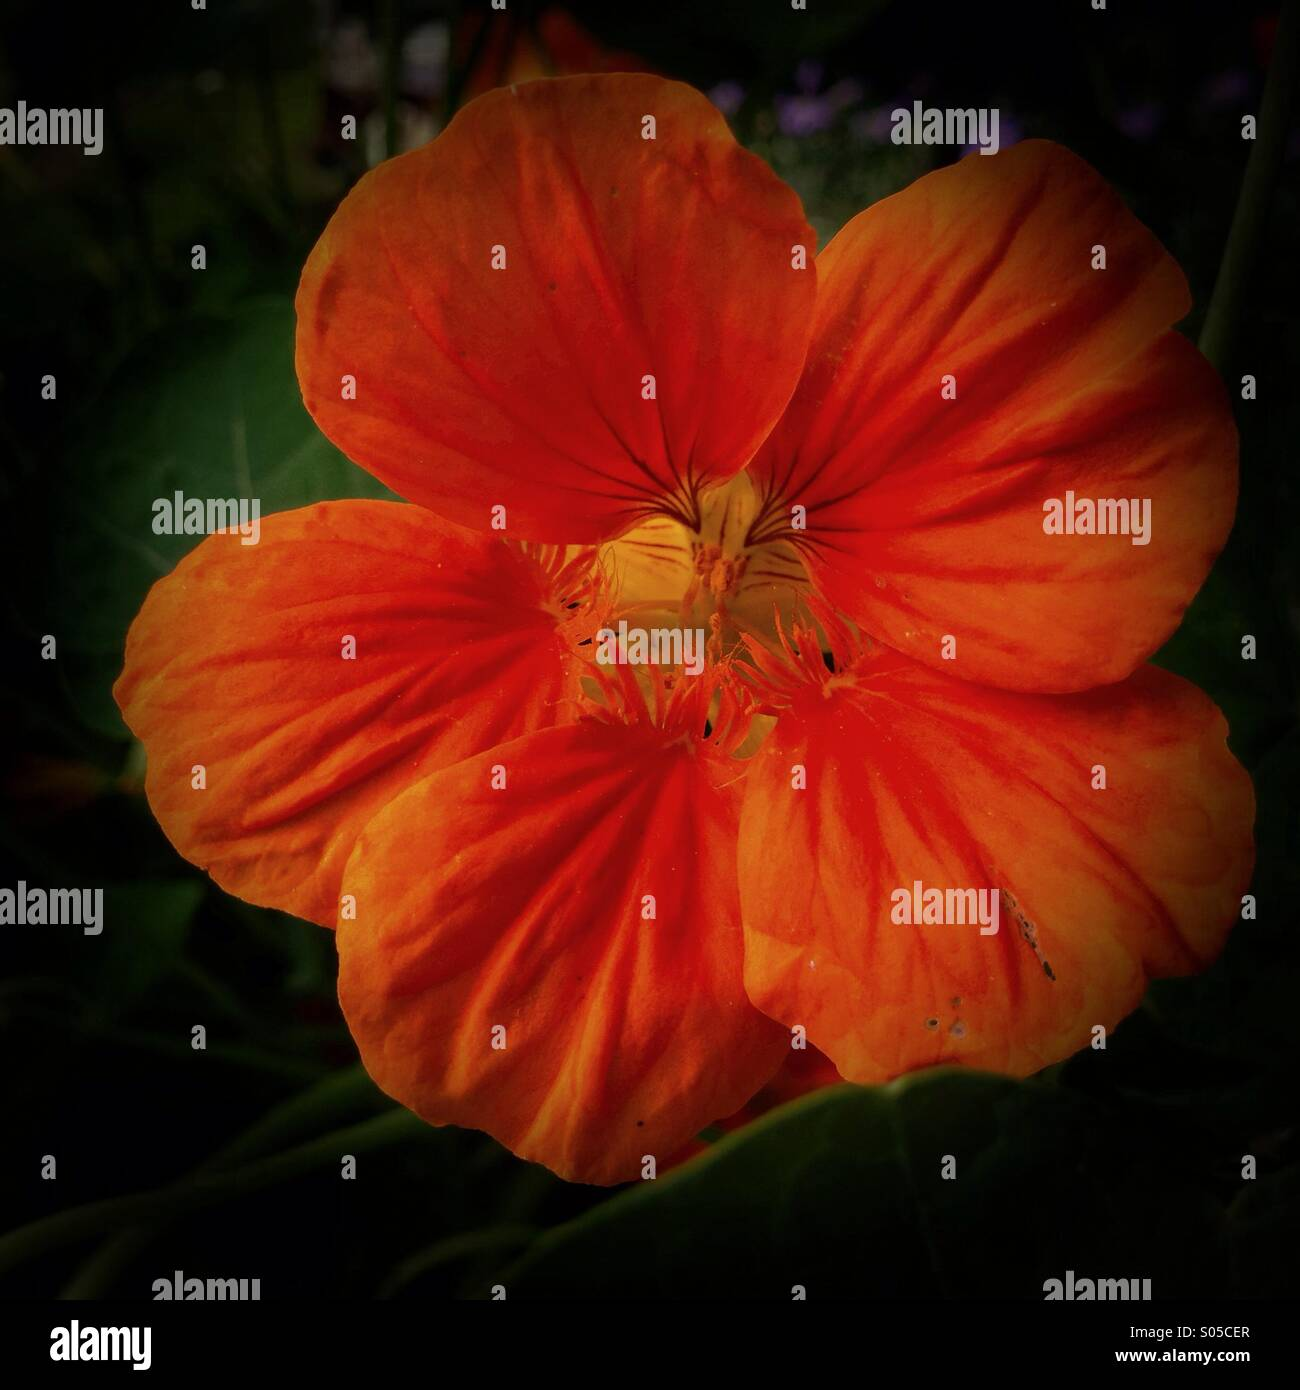 Nasturtium - simple and fleeting, take each flower as you find it. - Stock Image